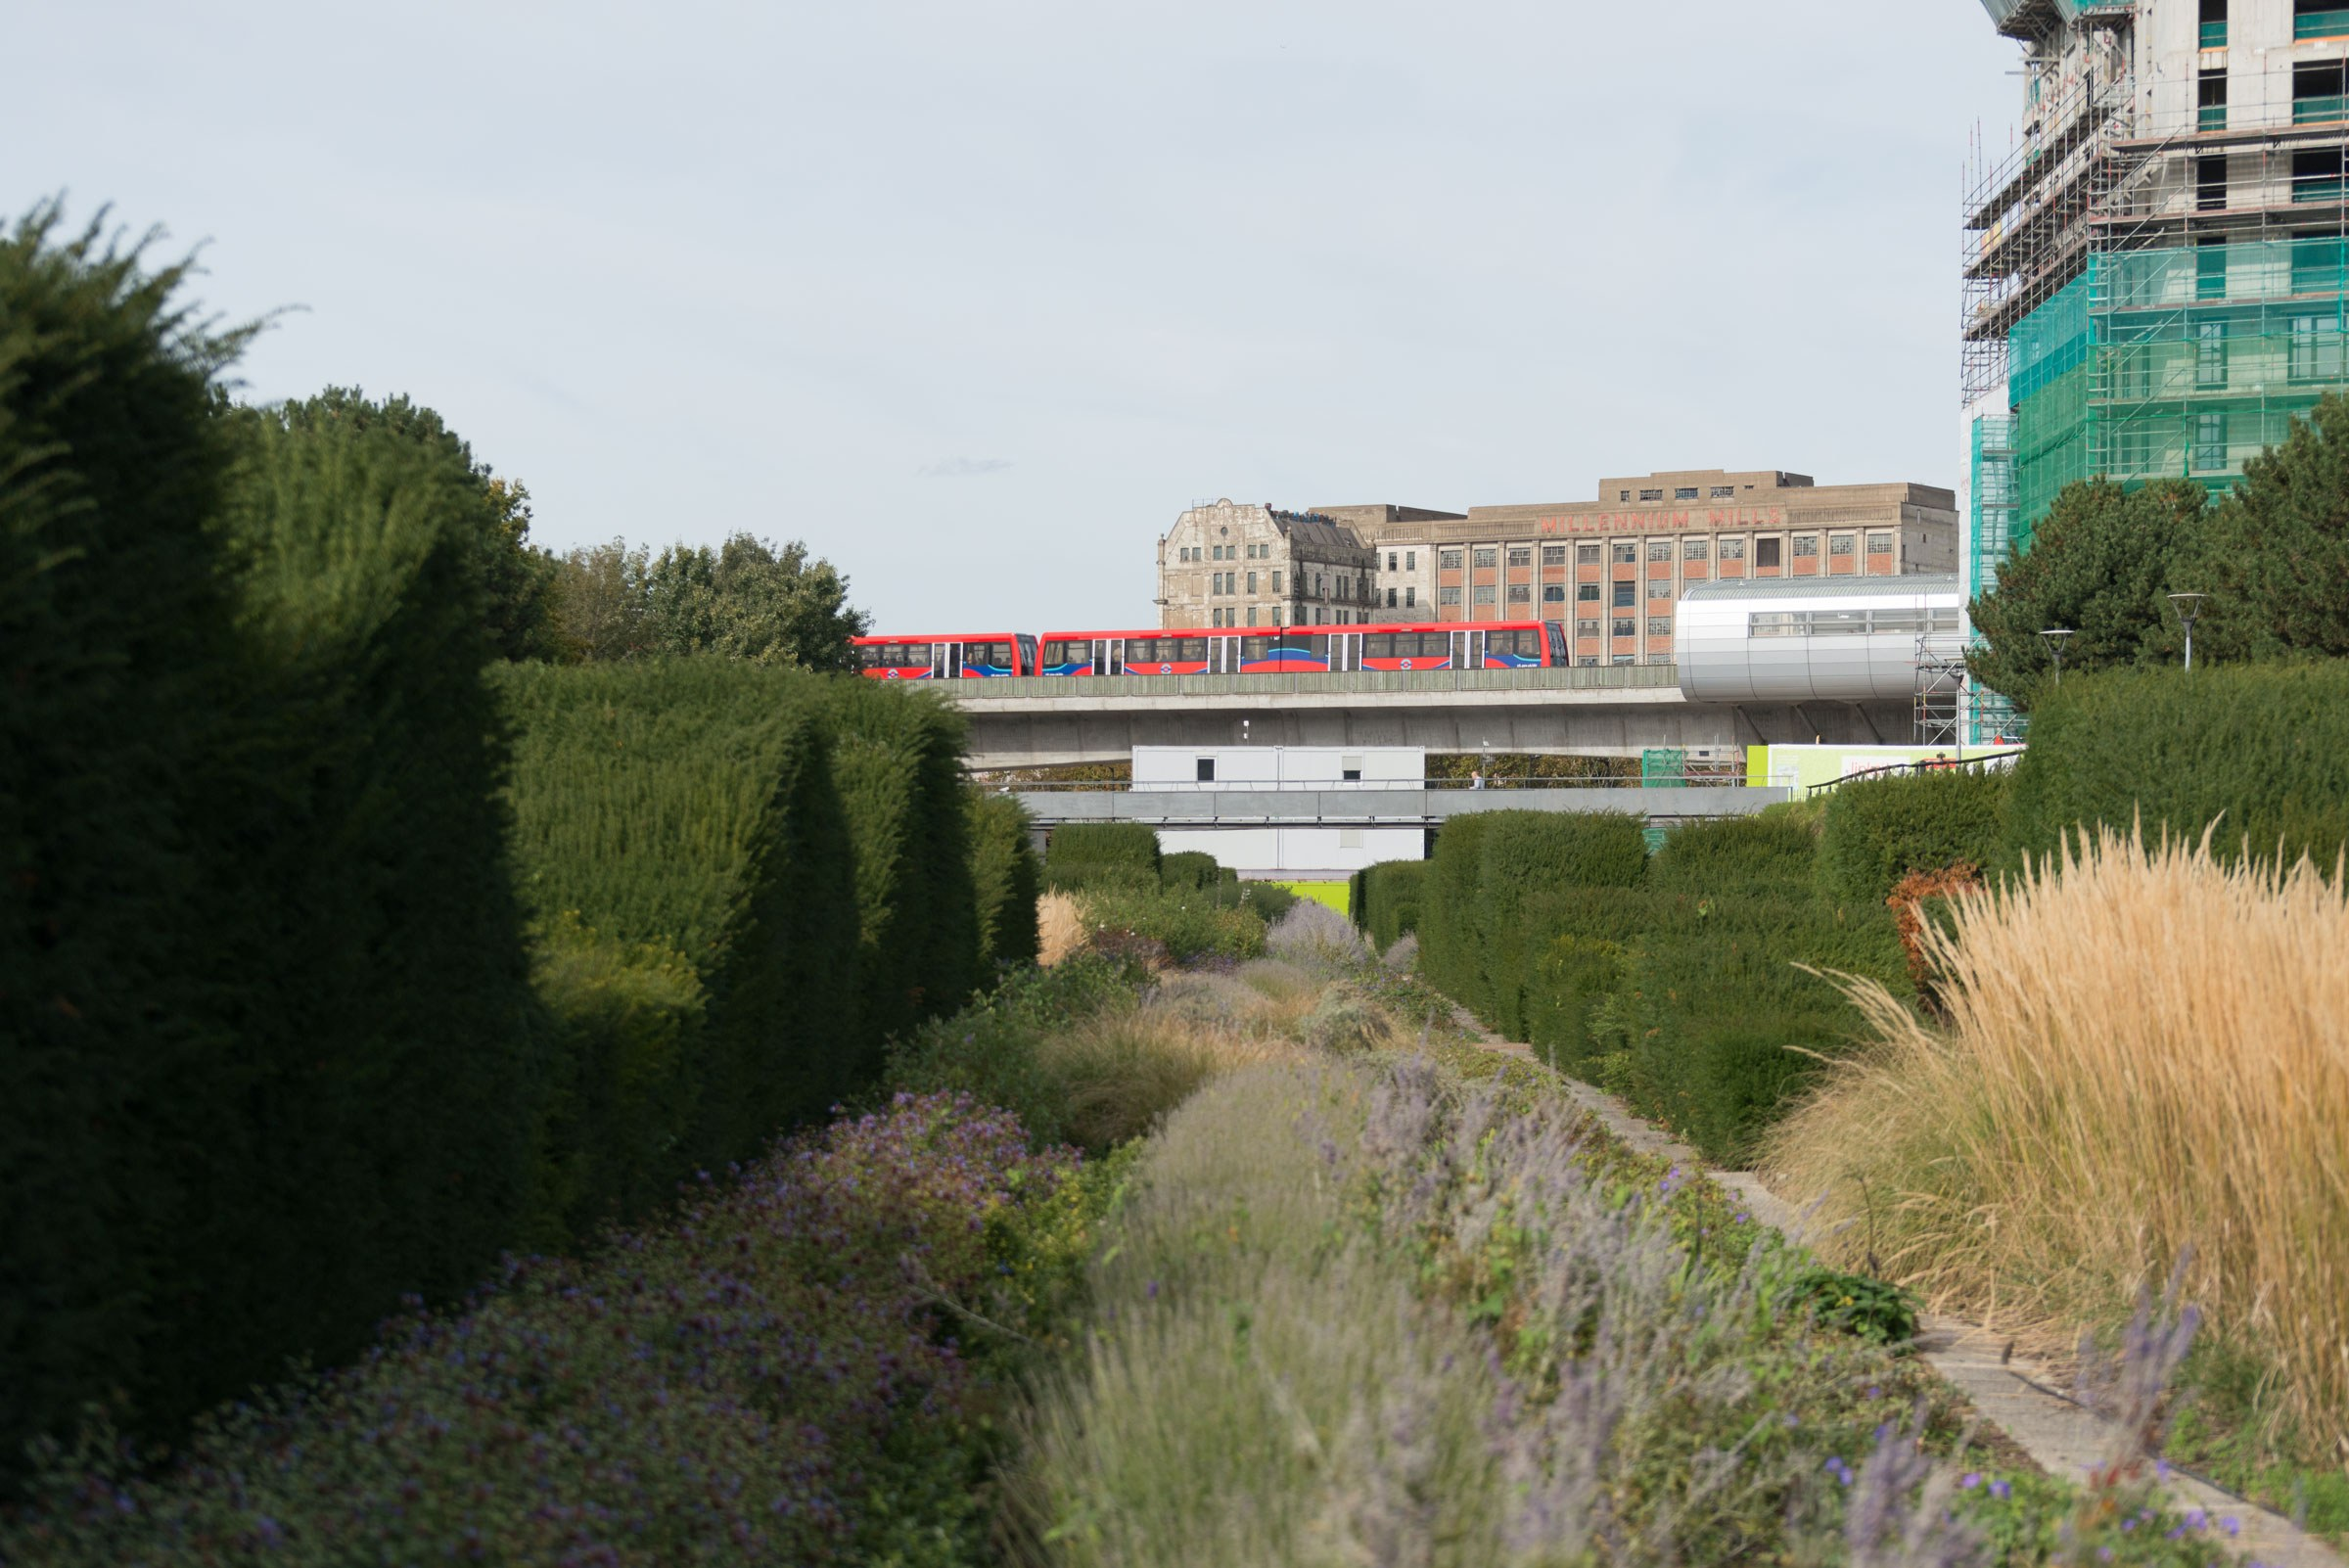 The Thames Barrier Park dock with the DLR train in the background